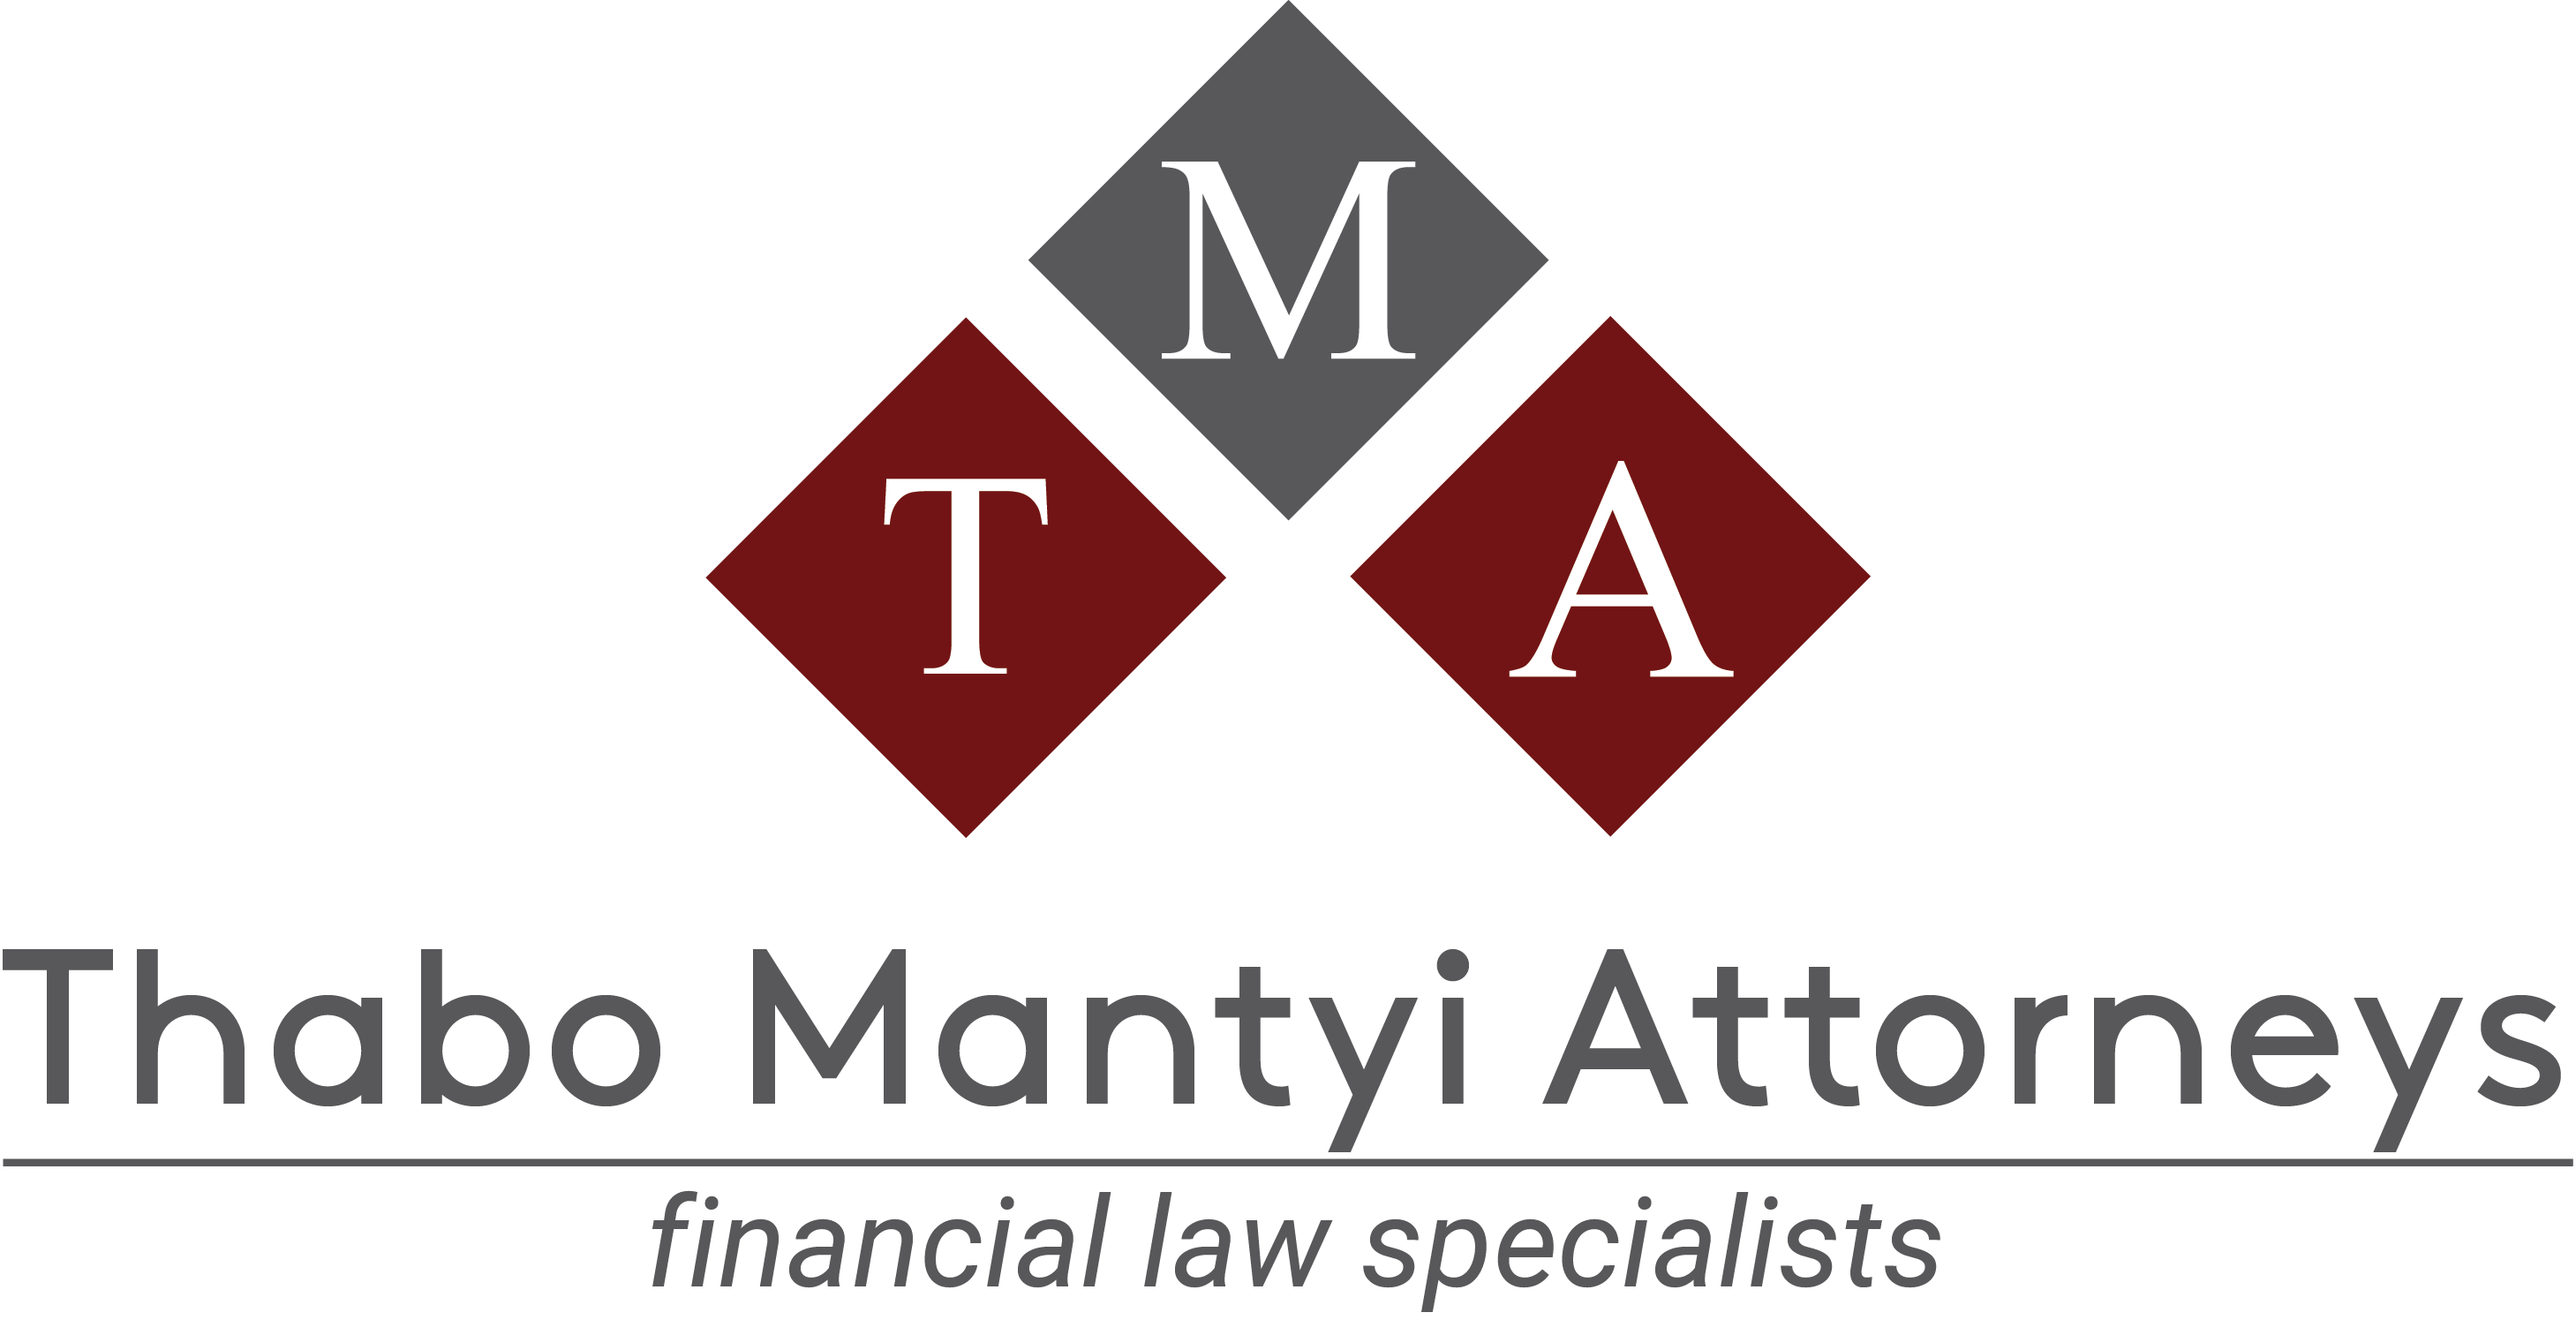 Thabo Mantyi Attorneys